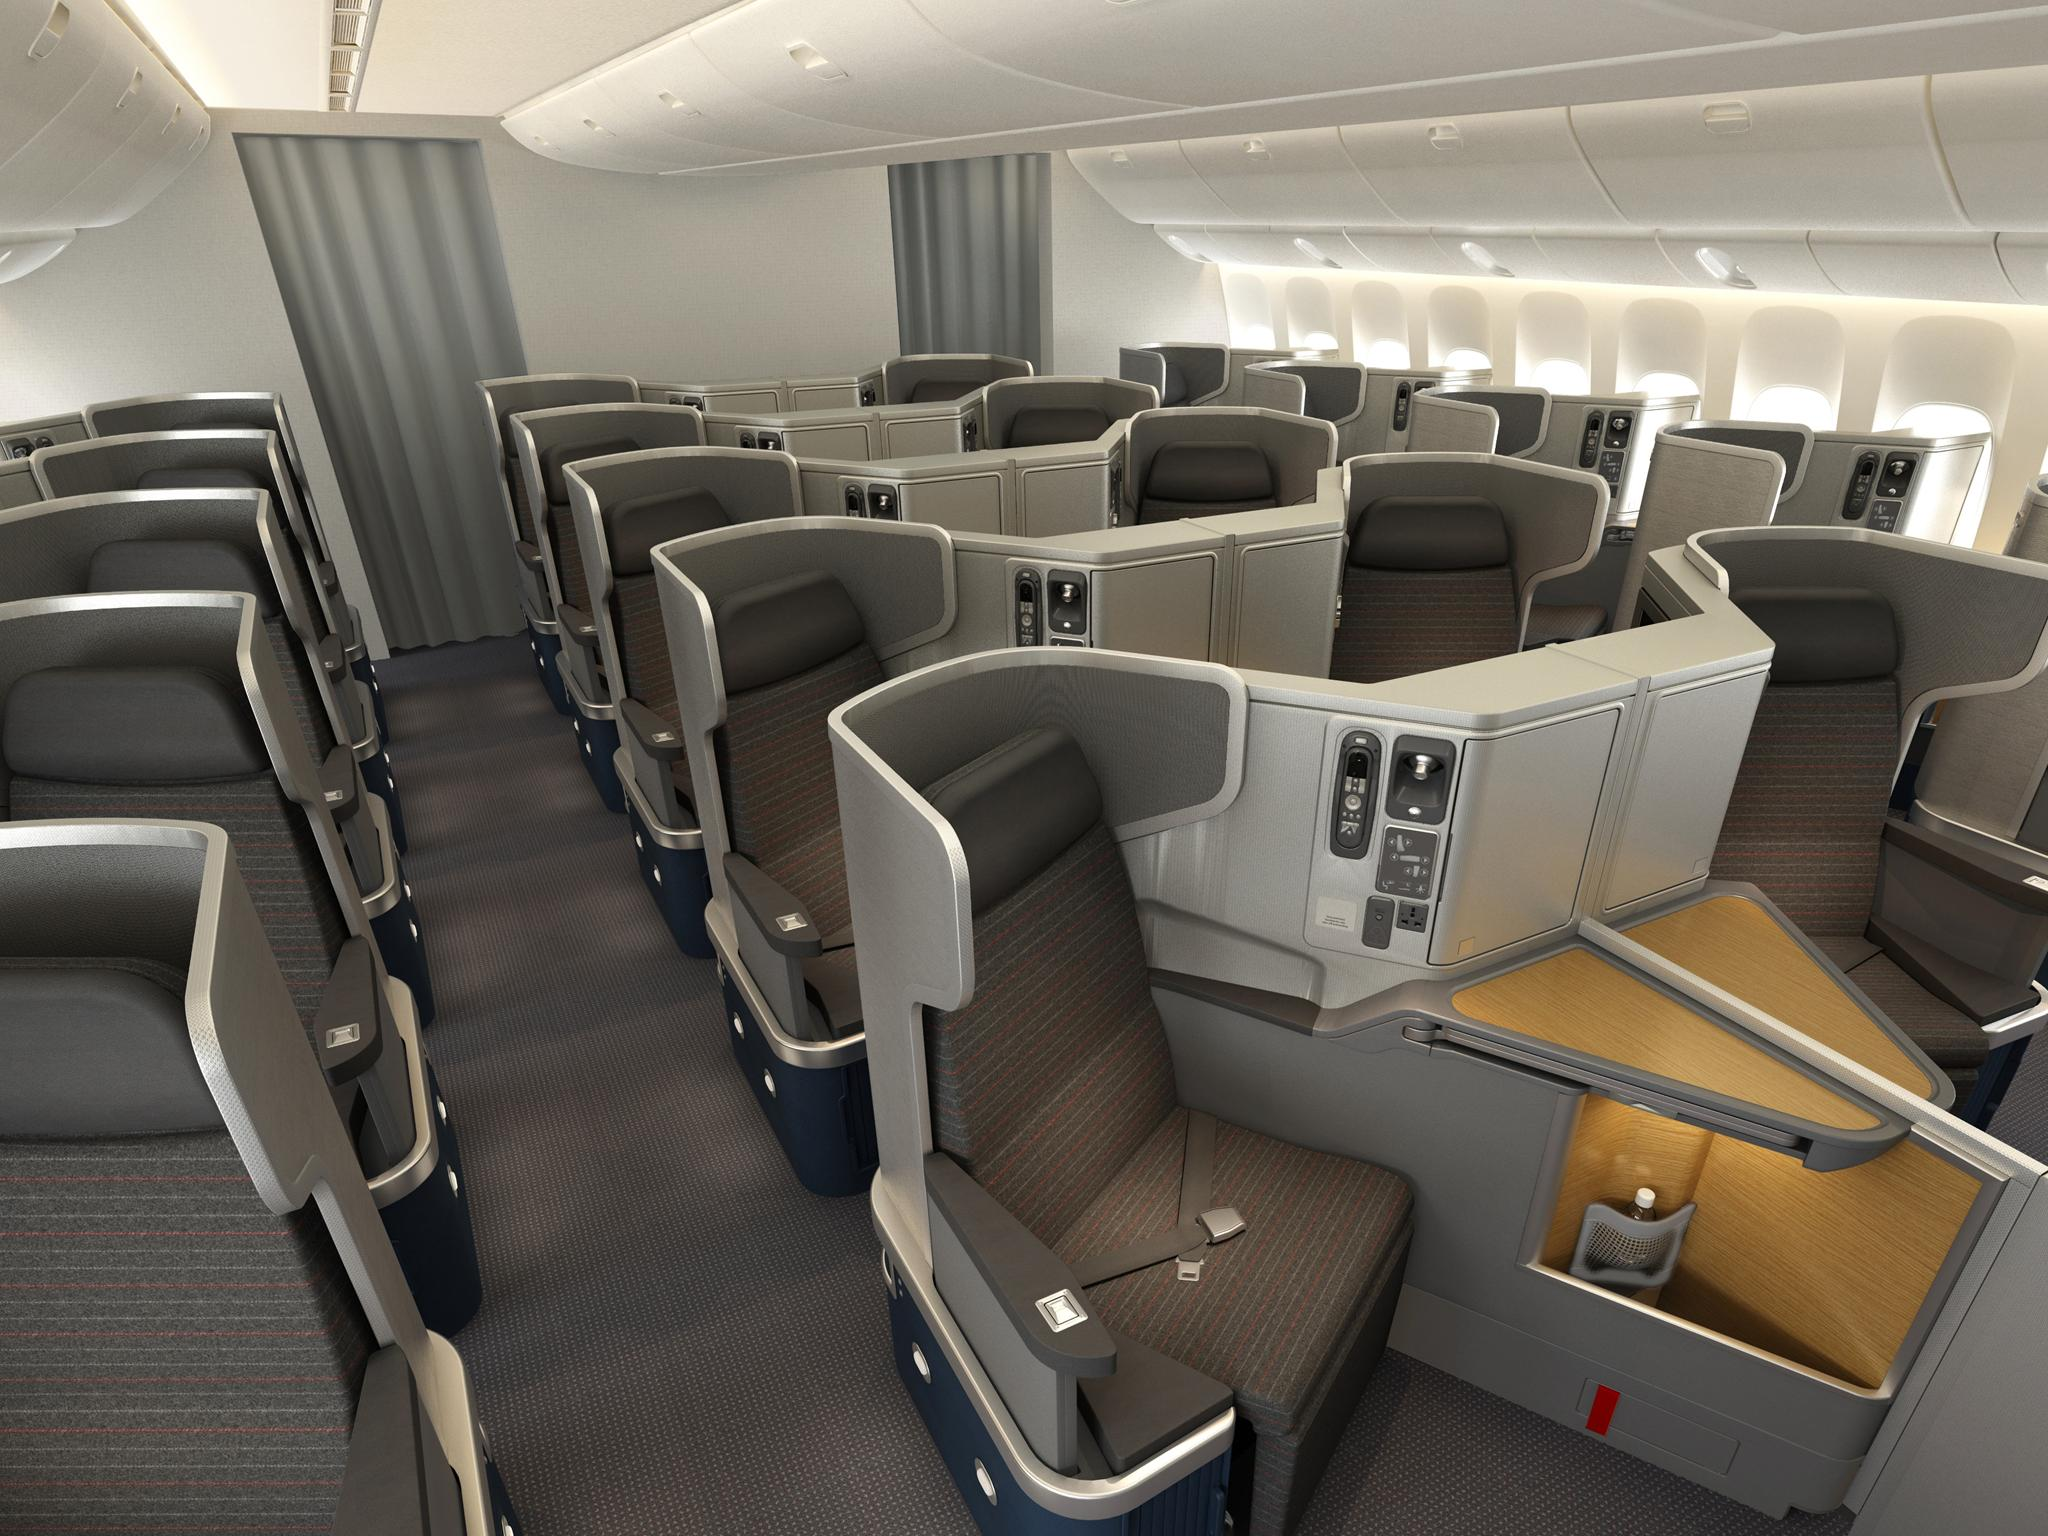 American's very competitive 777-300ER business class was extensively customised by Cathay Pacific. Image: American Airlines